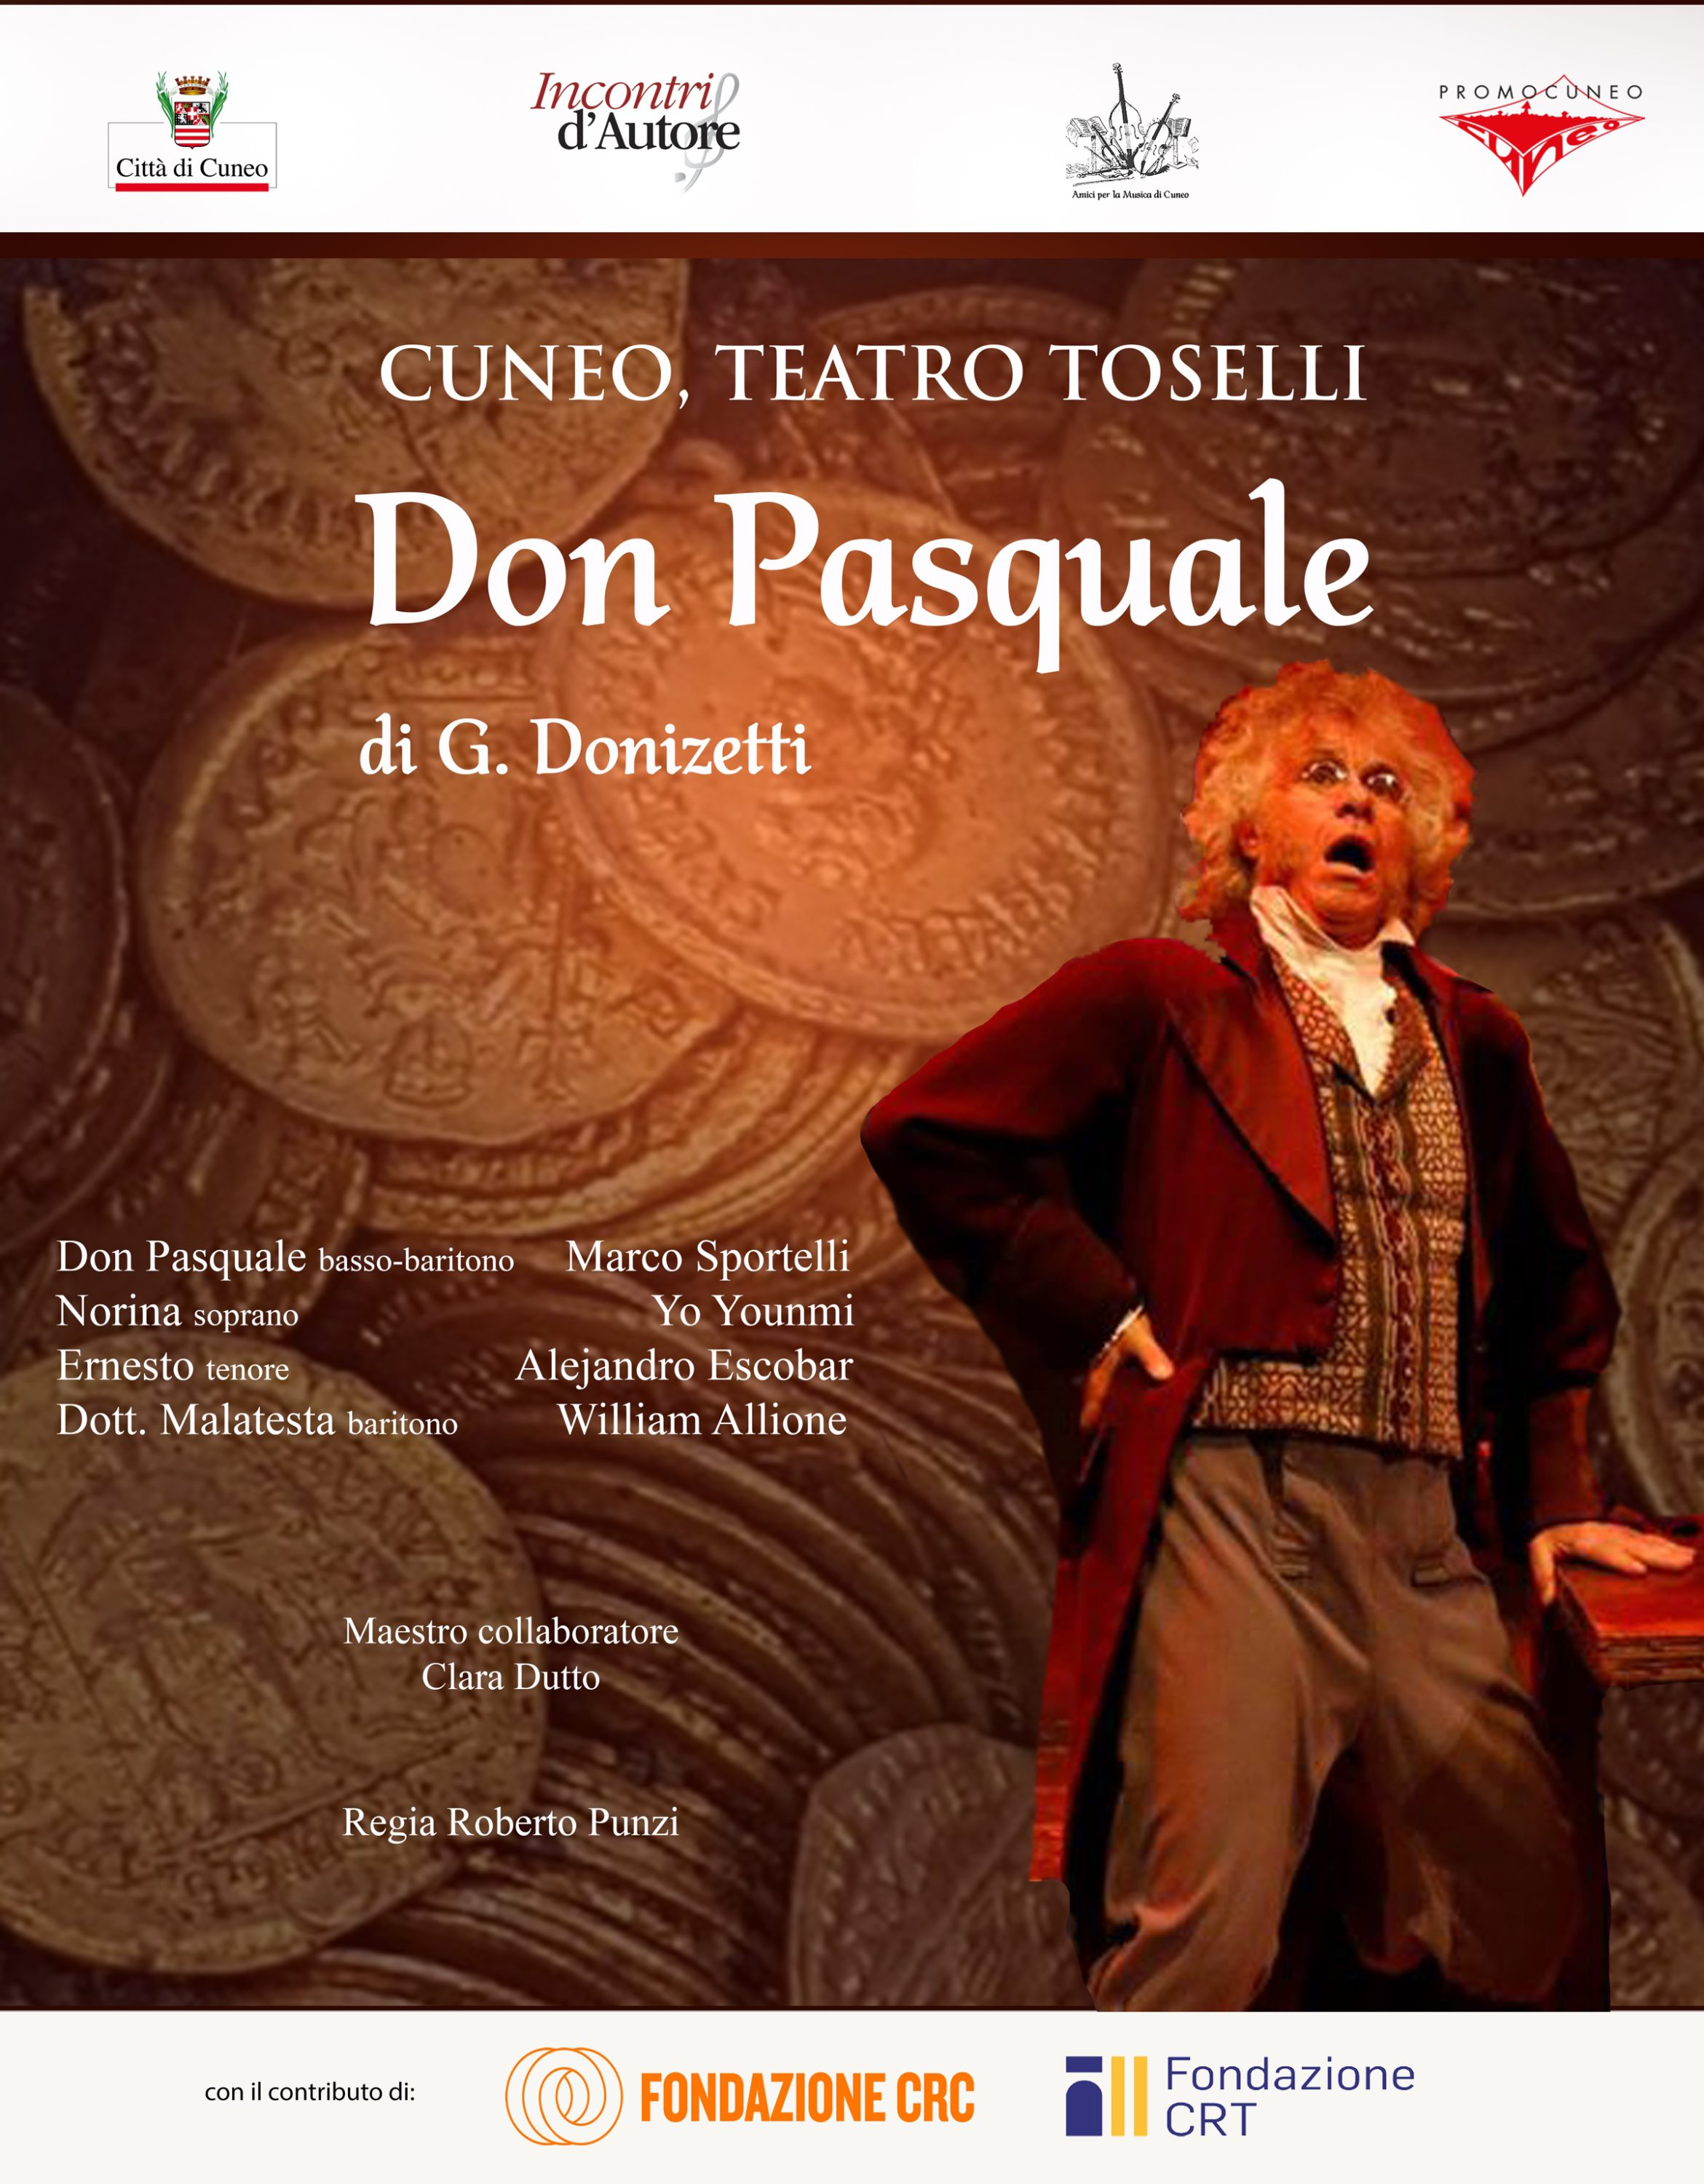 Don Pasquale Cuneo